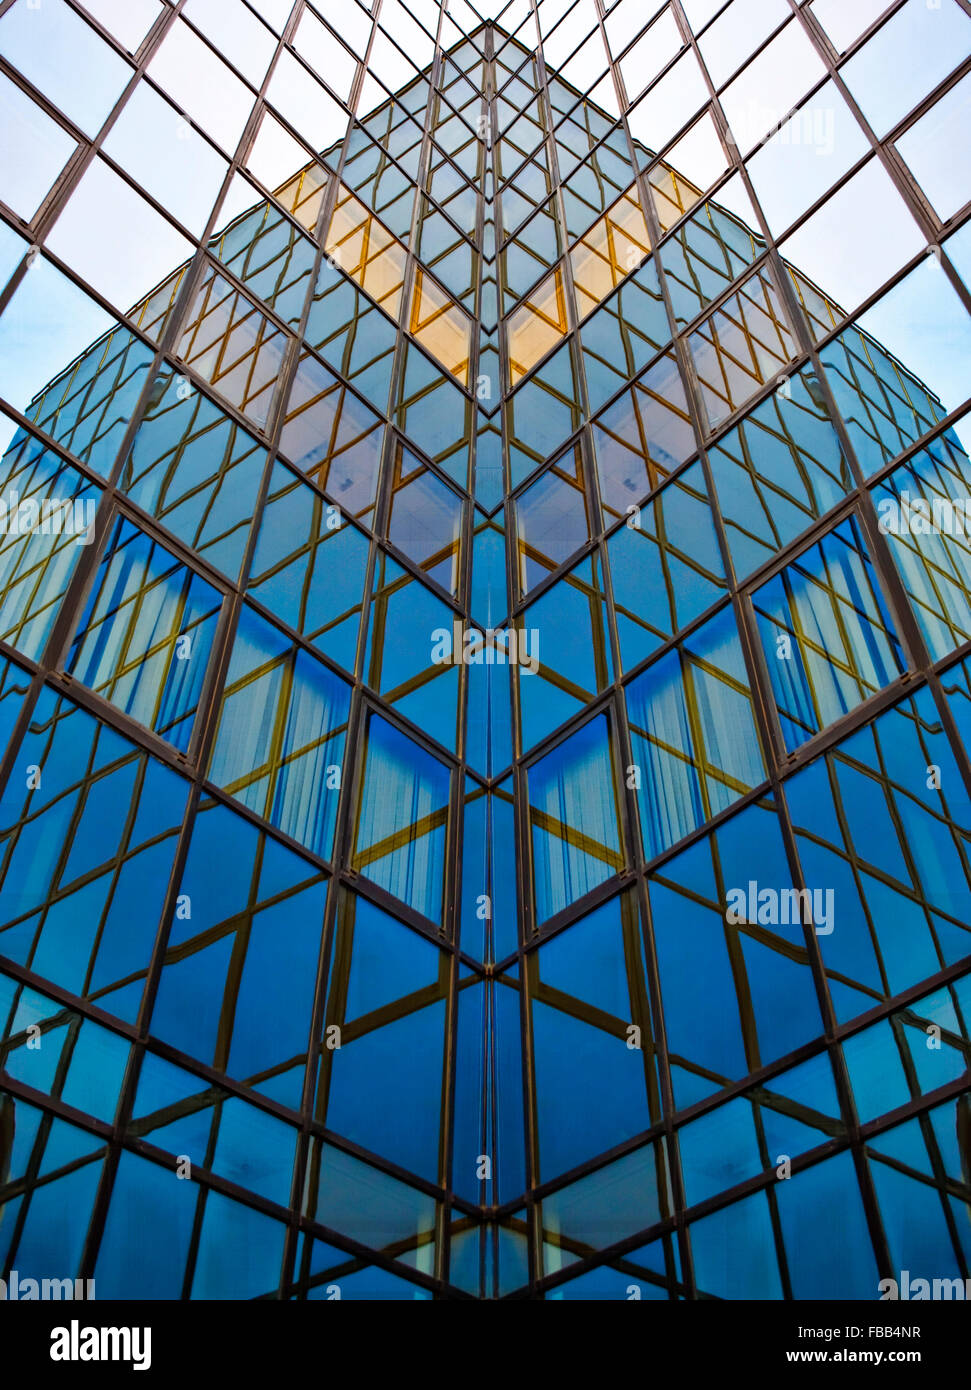 Glass walls of business center with reflections - Stock Image